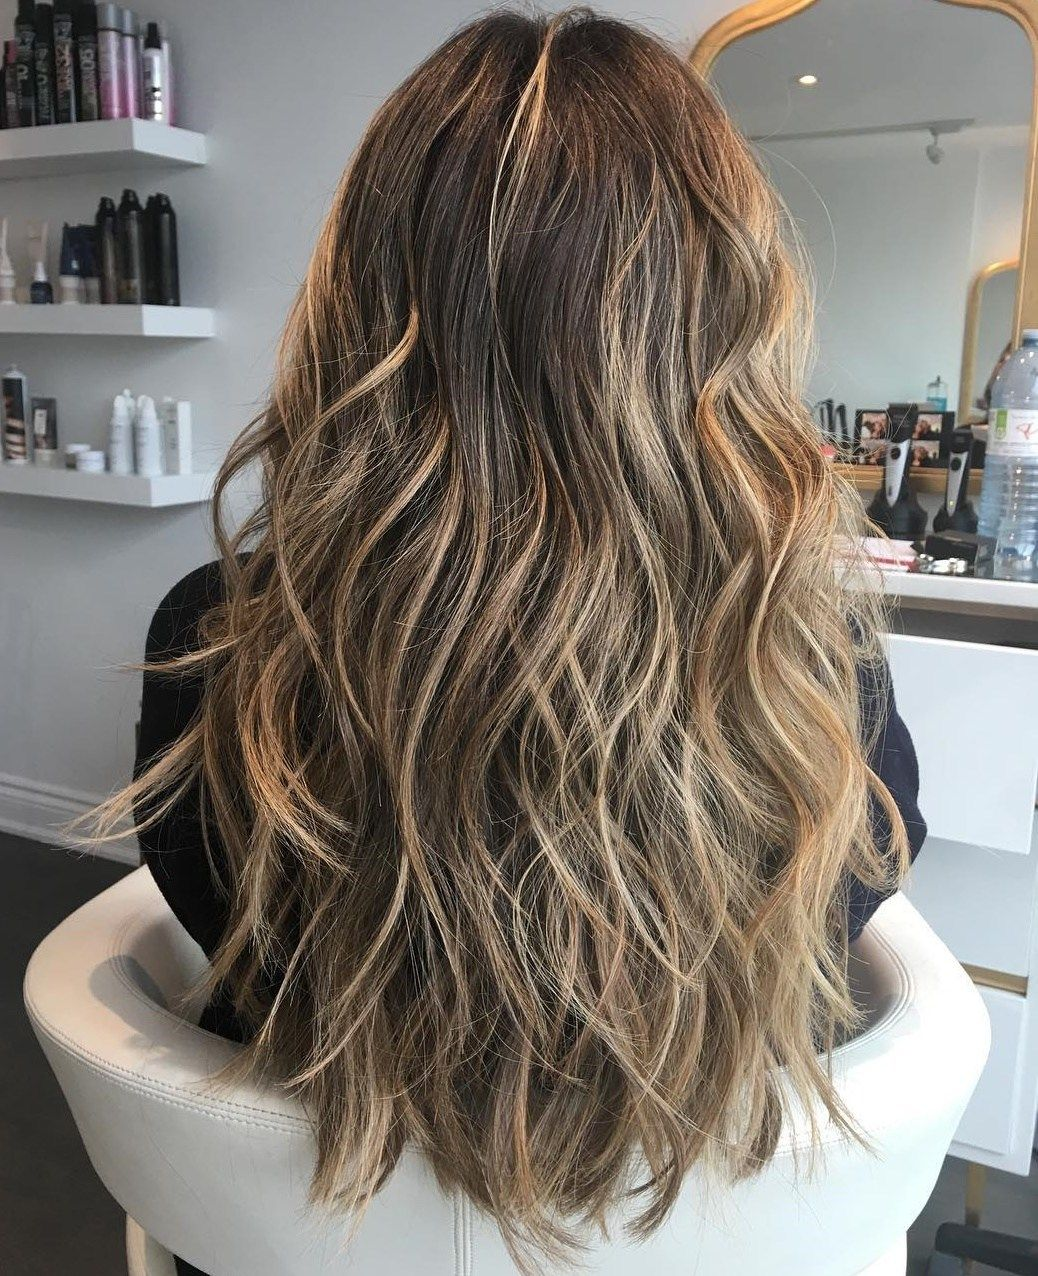 50 New Long Hairstyles With Layers For 2020 Hair Adviser Long Layered Hair New Long Hairstyles Long Hair Styles